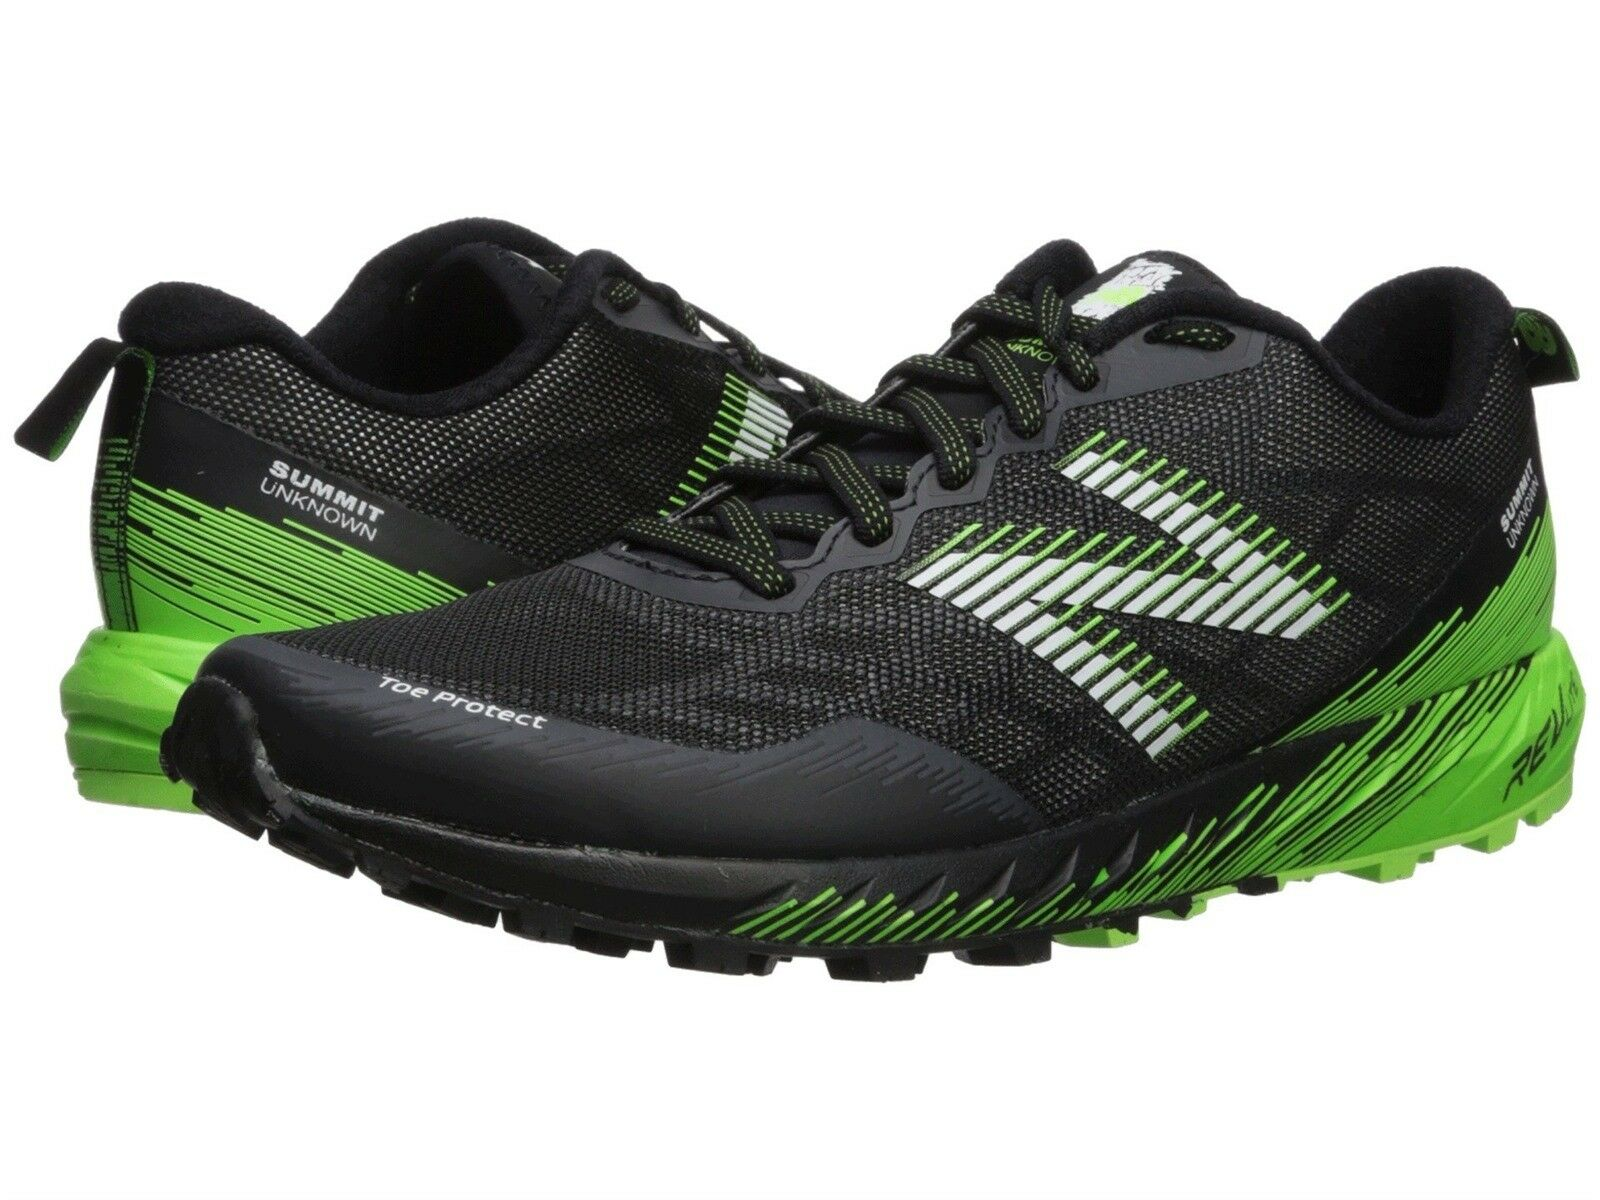 NEW BALANCE SUMMIT UNKNOWN TRAIL RUNNING SHOES MENS SIZES 9-12 FREE USA SHIPPING